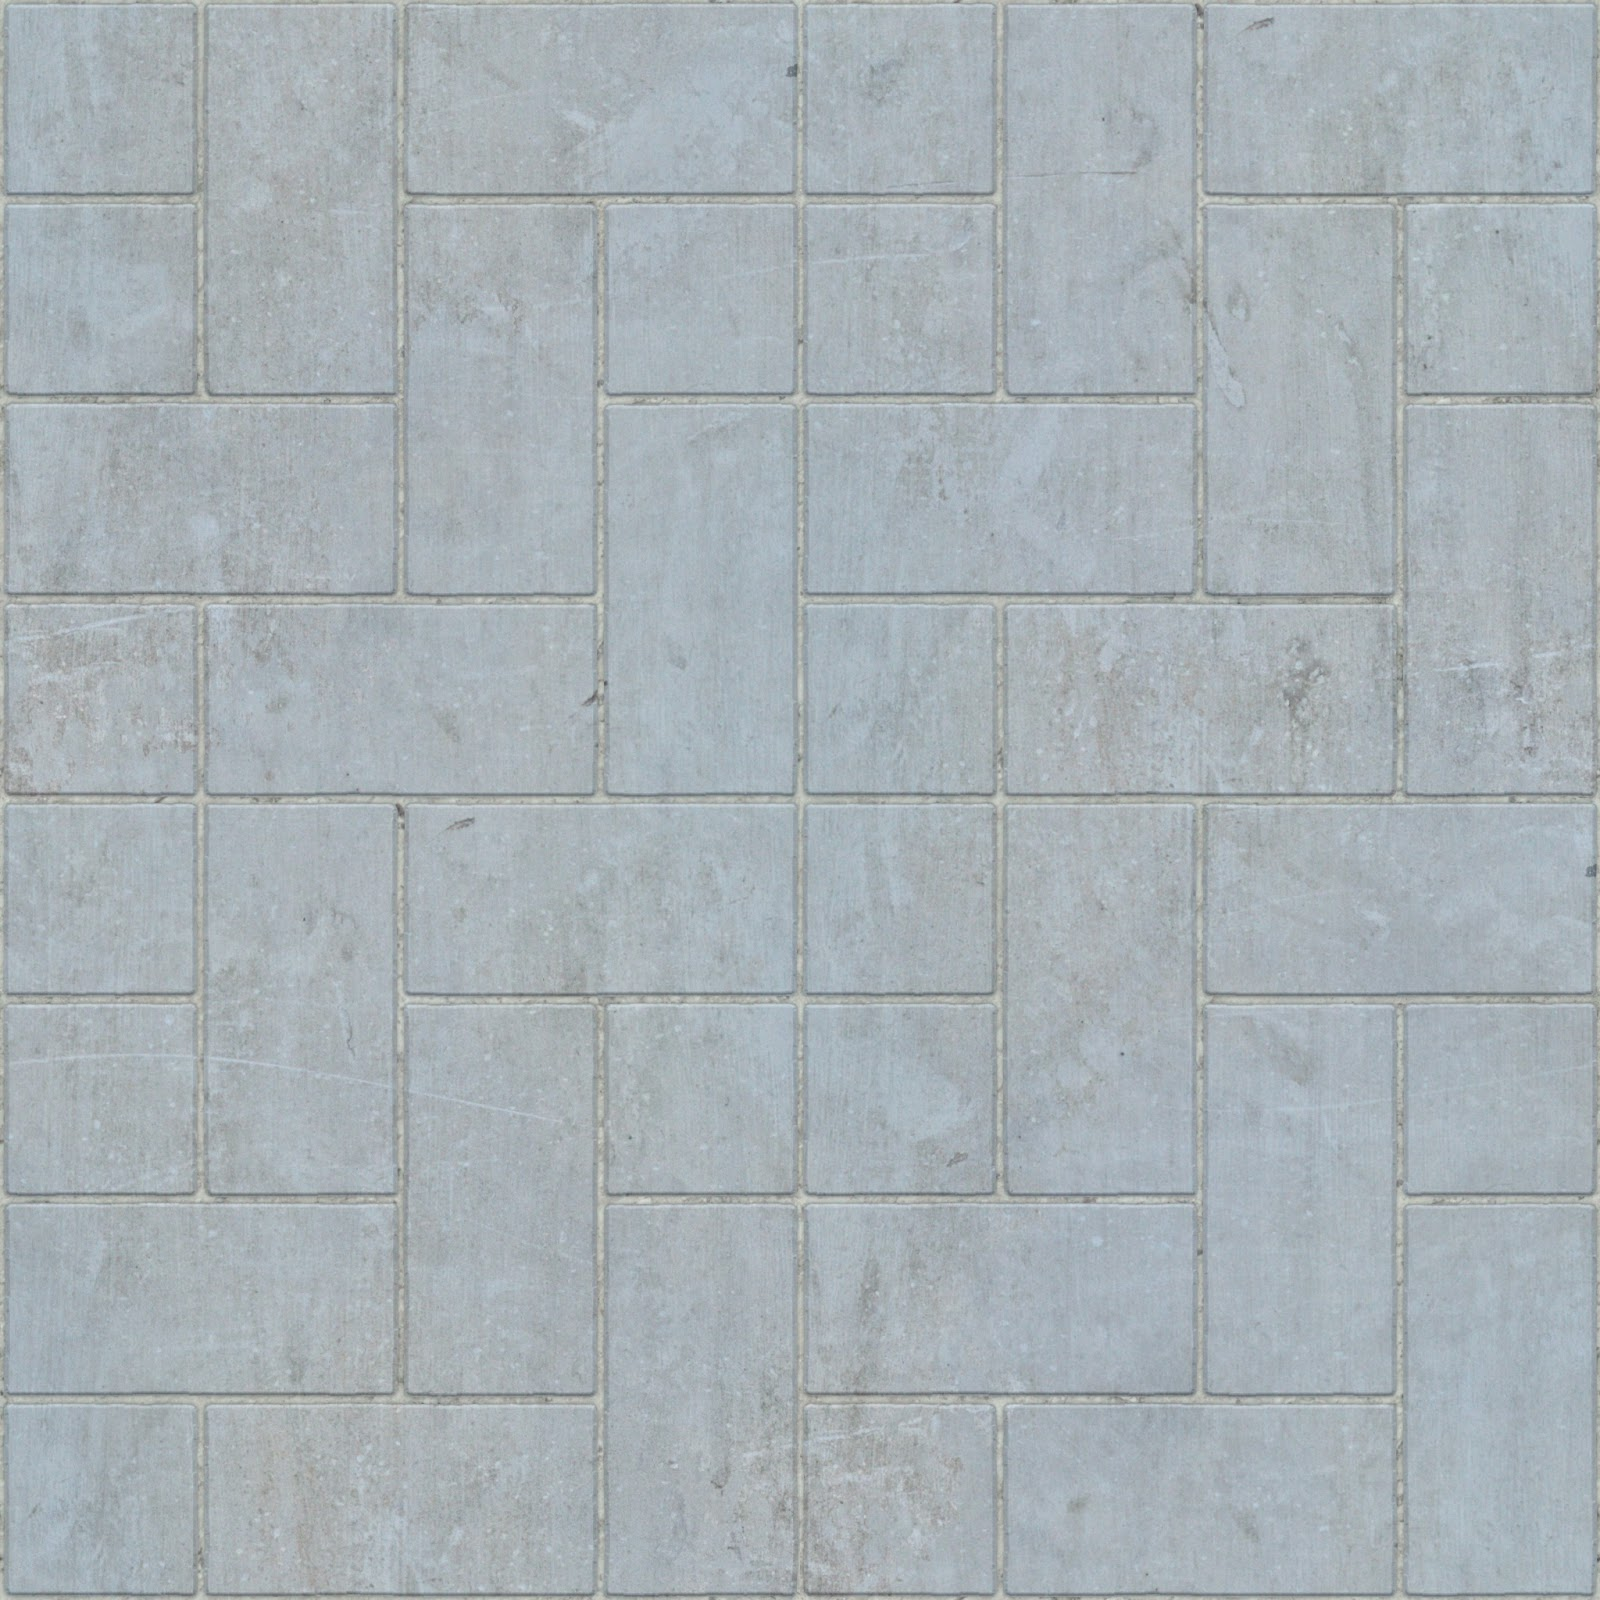 High Resolution Seamless Textures: Brick concrete tile floor ...